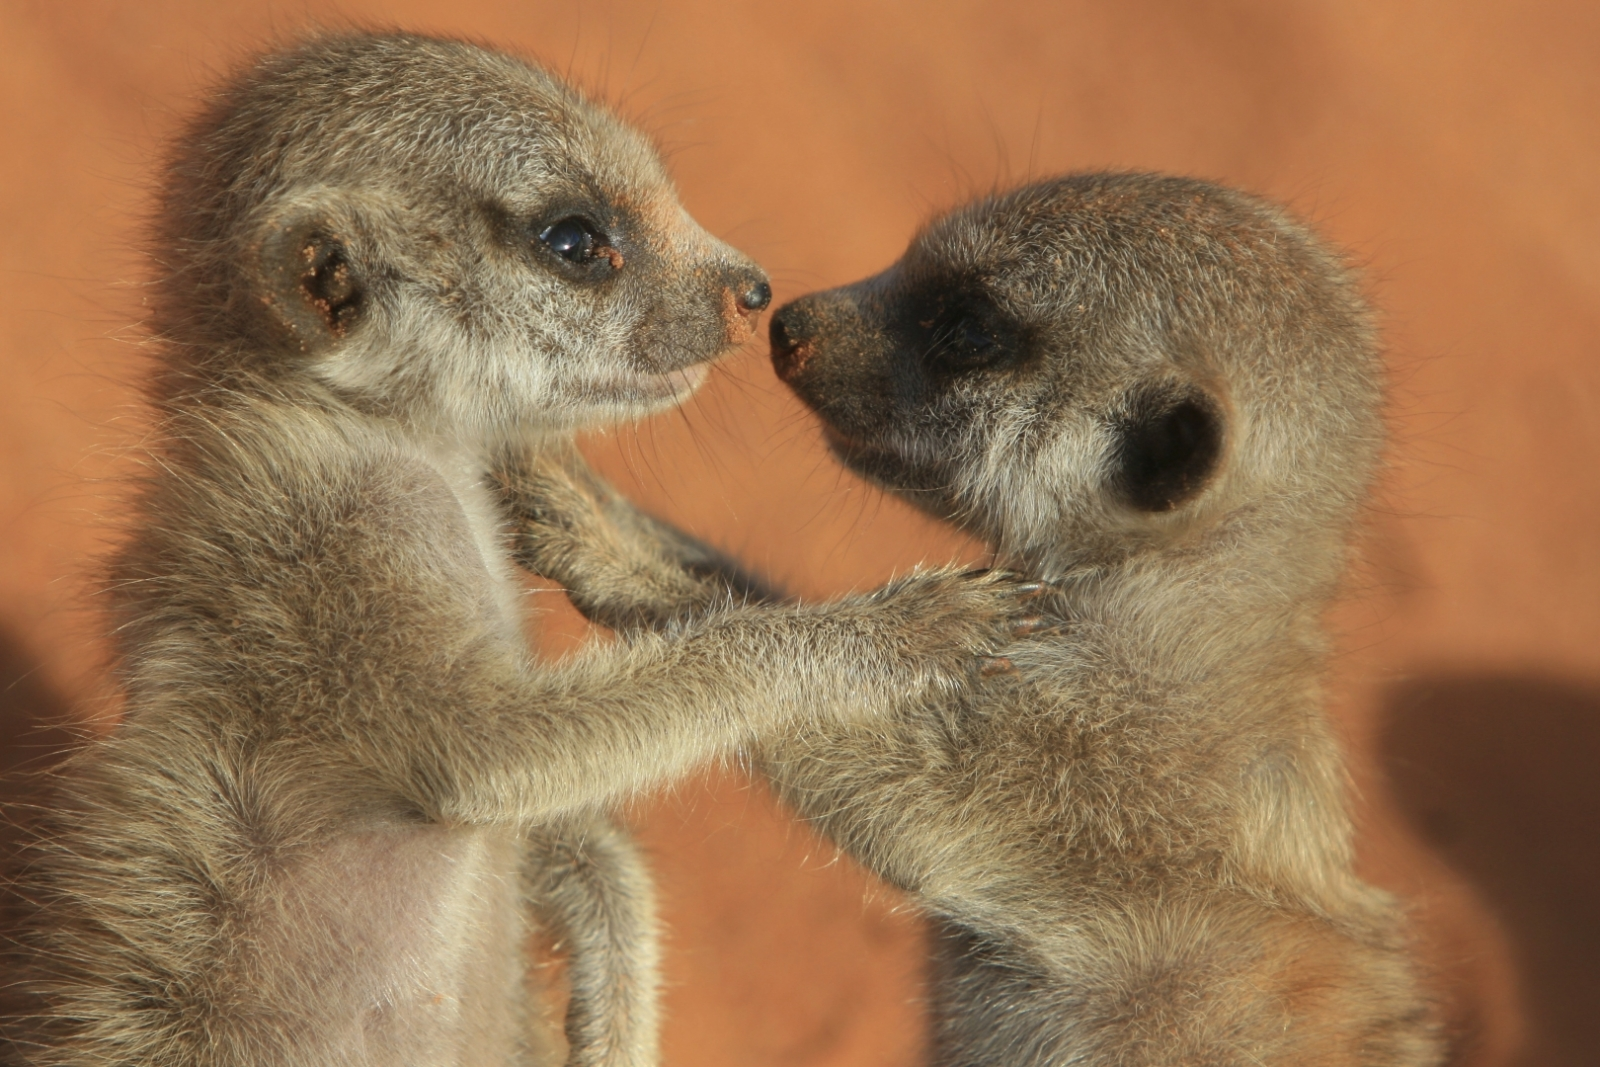 meerkat reproduction strategy